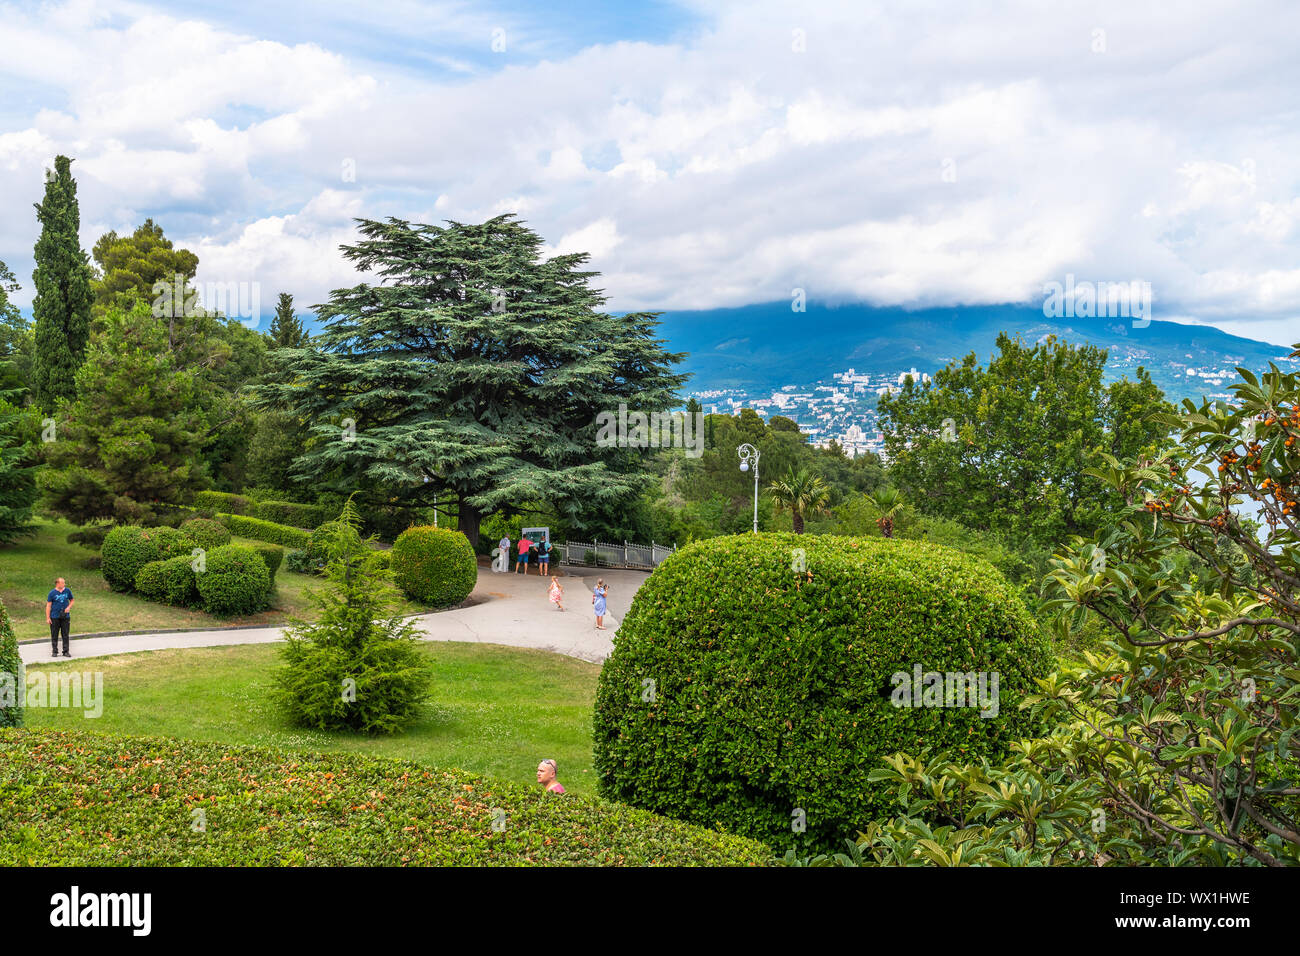 Livadia, Crimea - July 10. 2019. Park on the territory of the Livadia Palace, the Residence of Russian Tsars Stock Photo